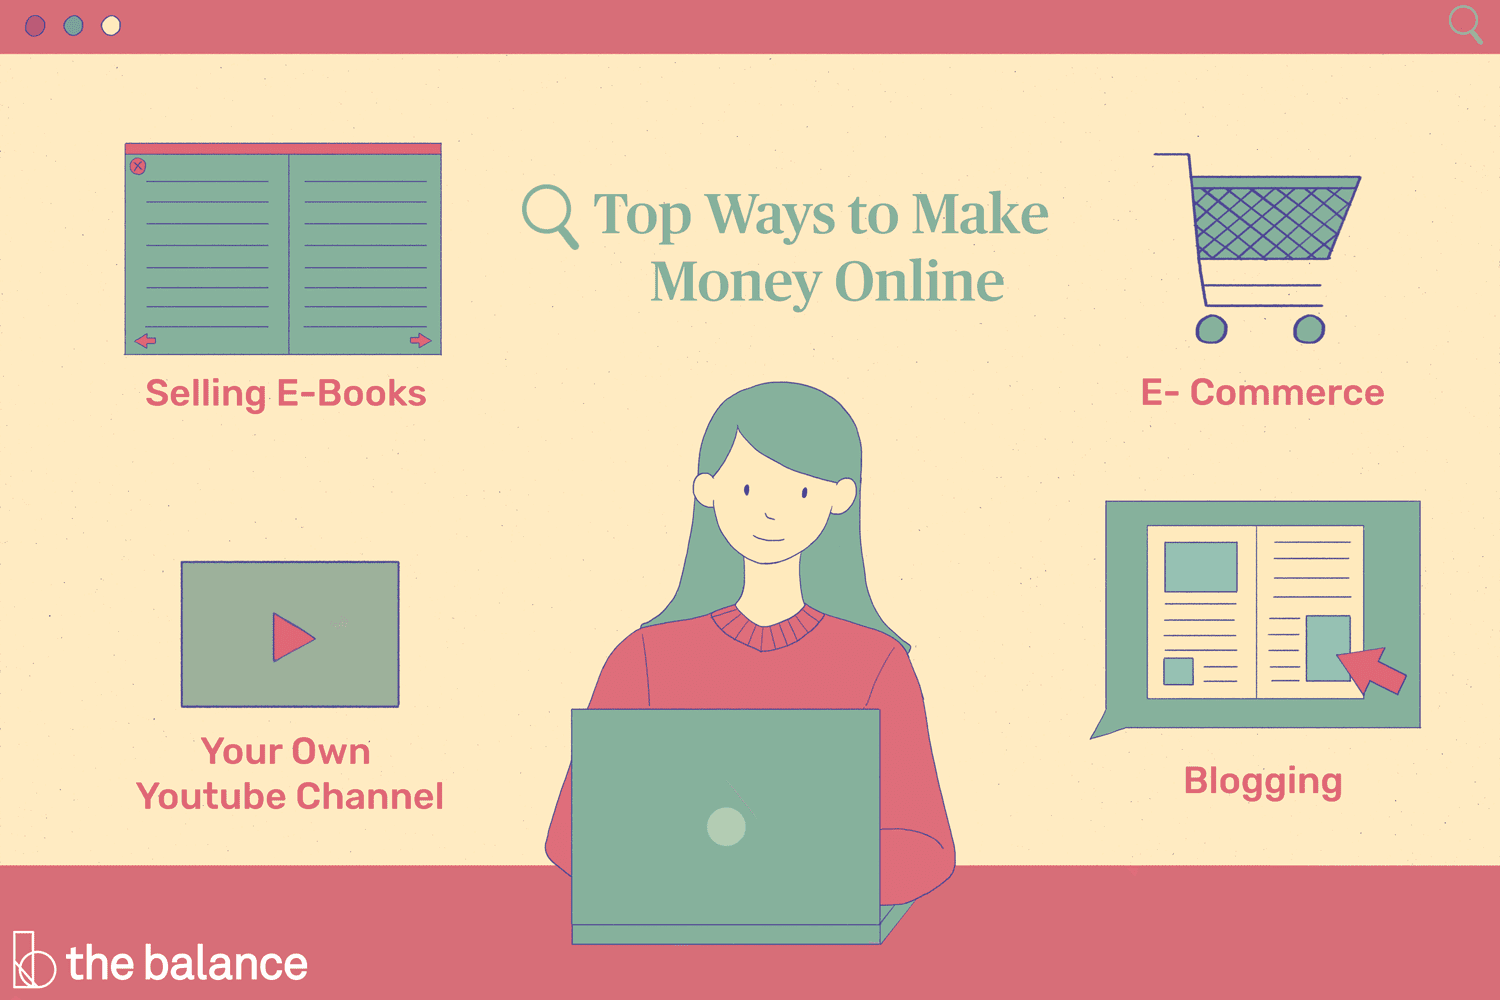 Make Money Online - Top 7 Ways to Do It